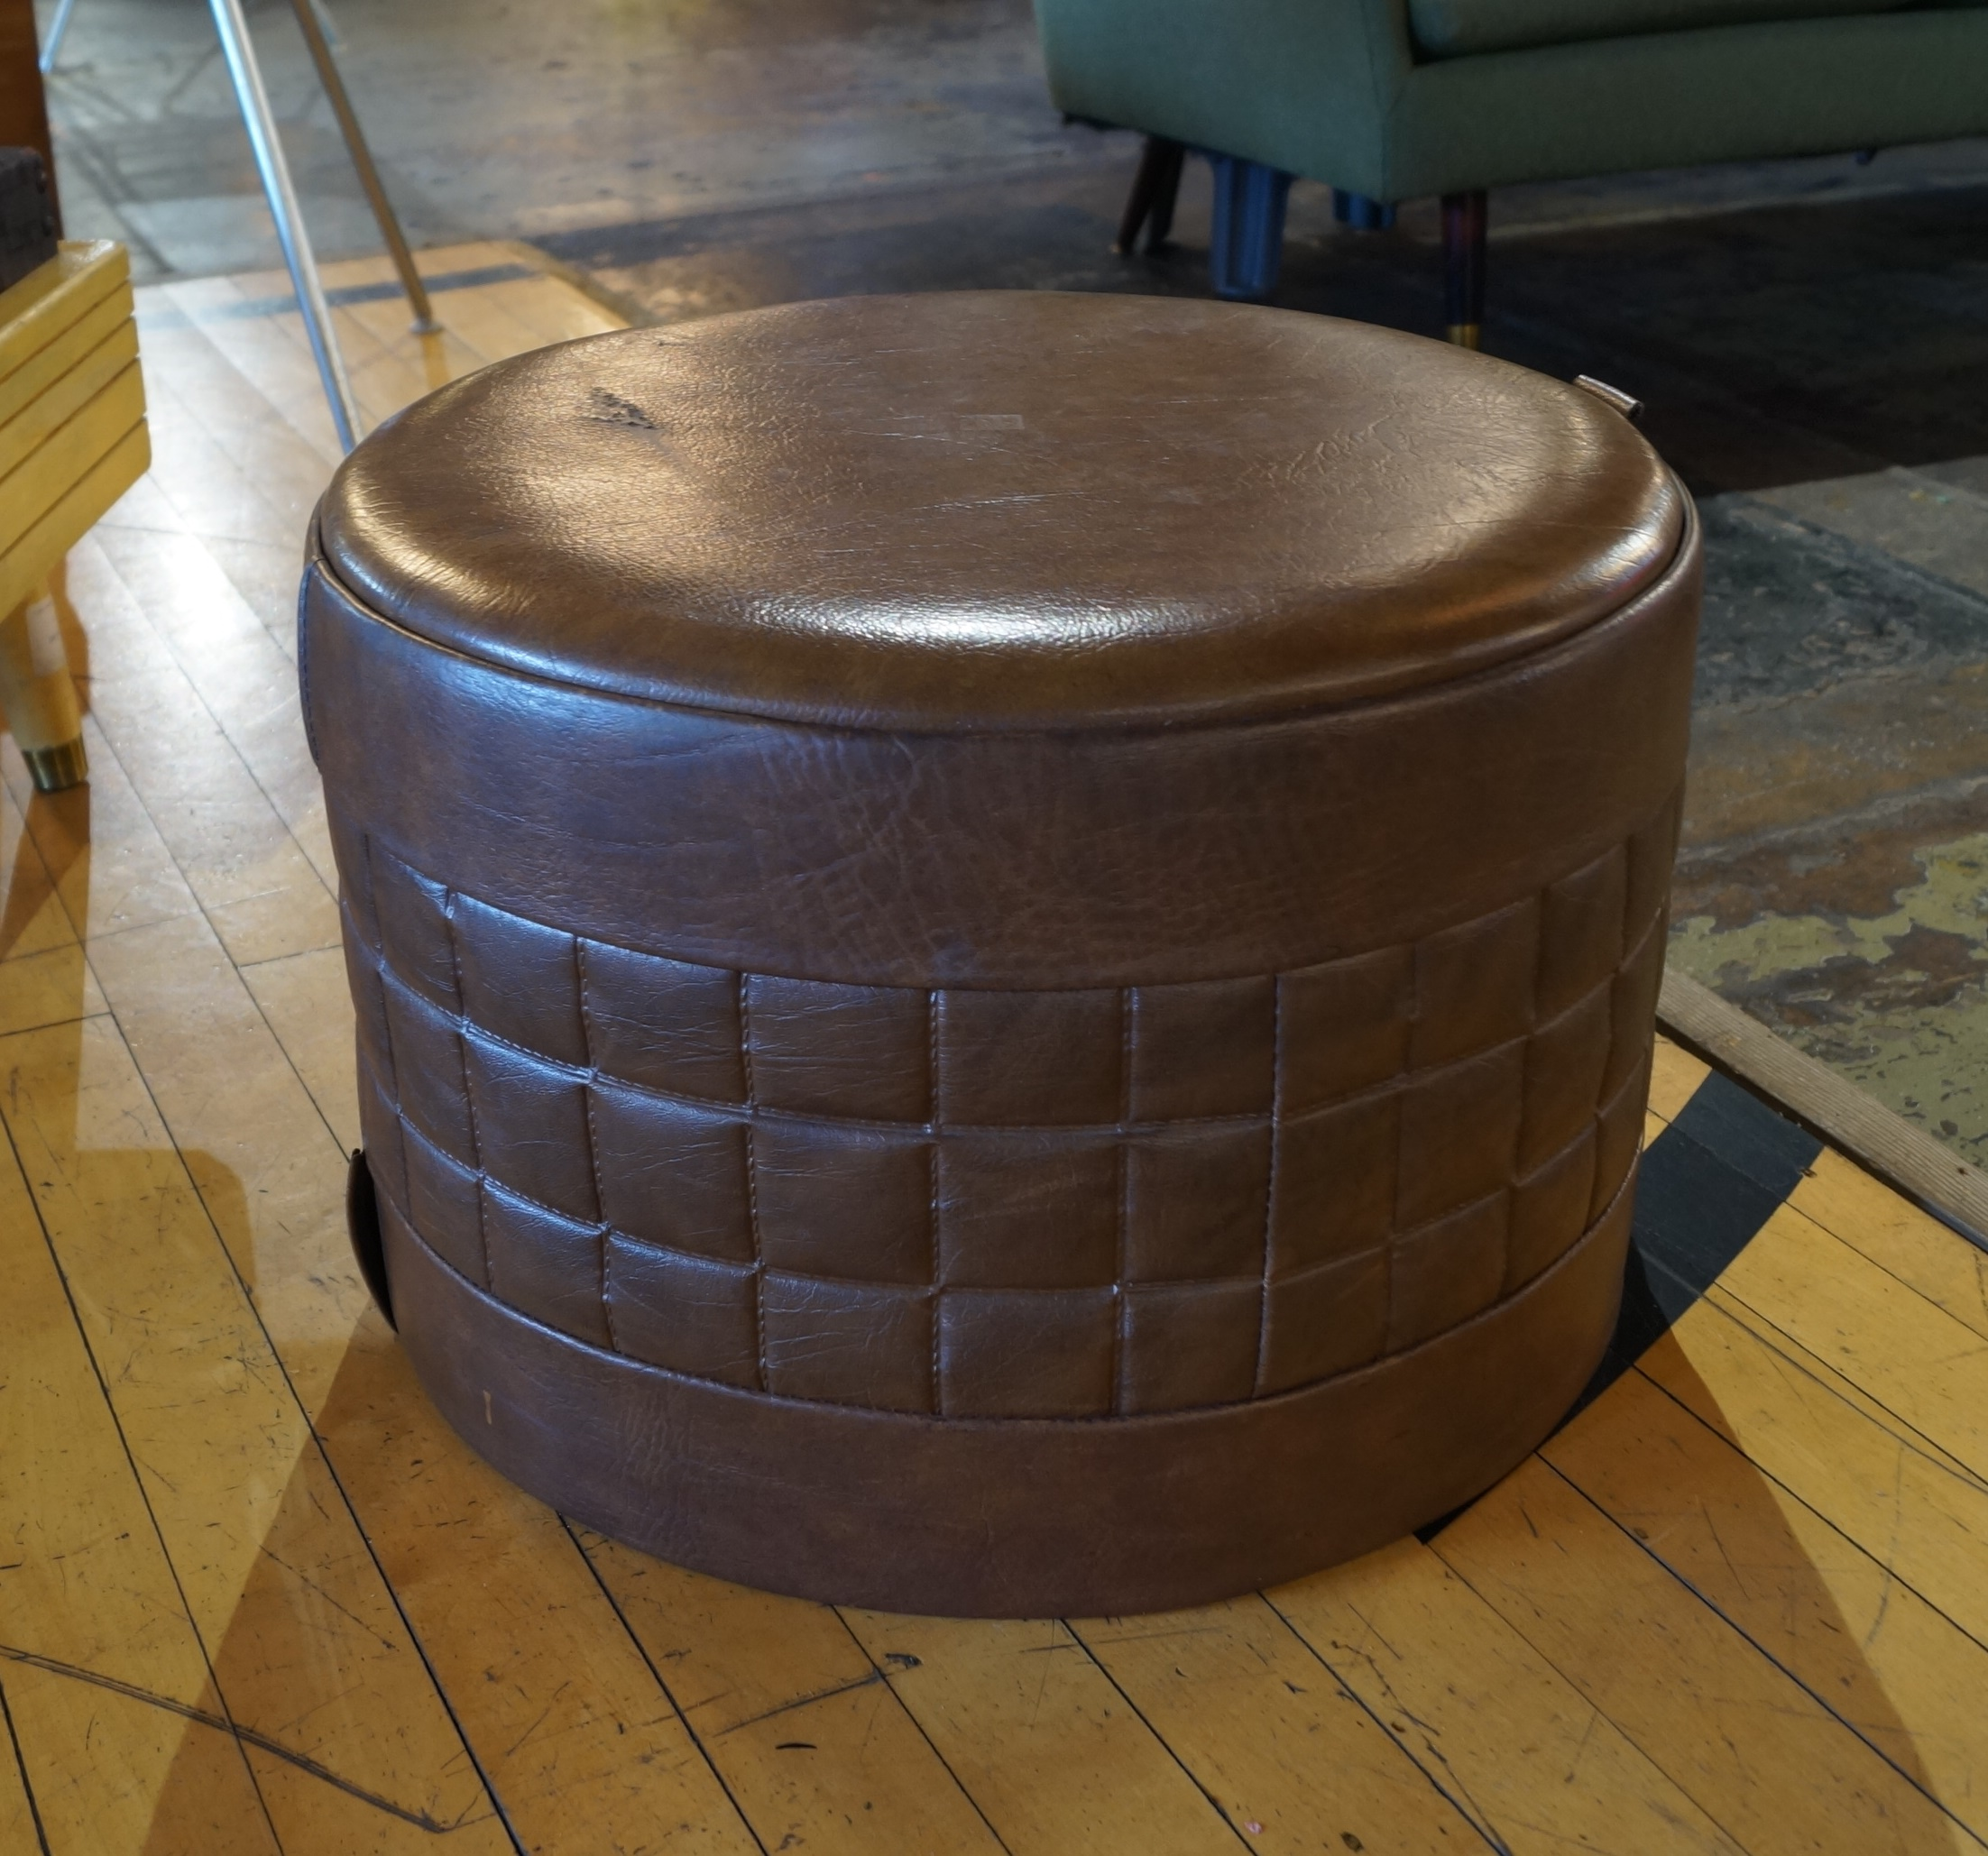 Tremendous Vintage Brown Vinyl Round Ottoman Salvage One Caraccident5 Cool Chair Designs And Ideas Caraccident5Info